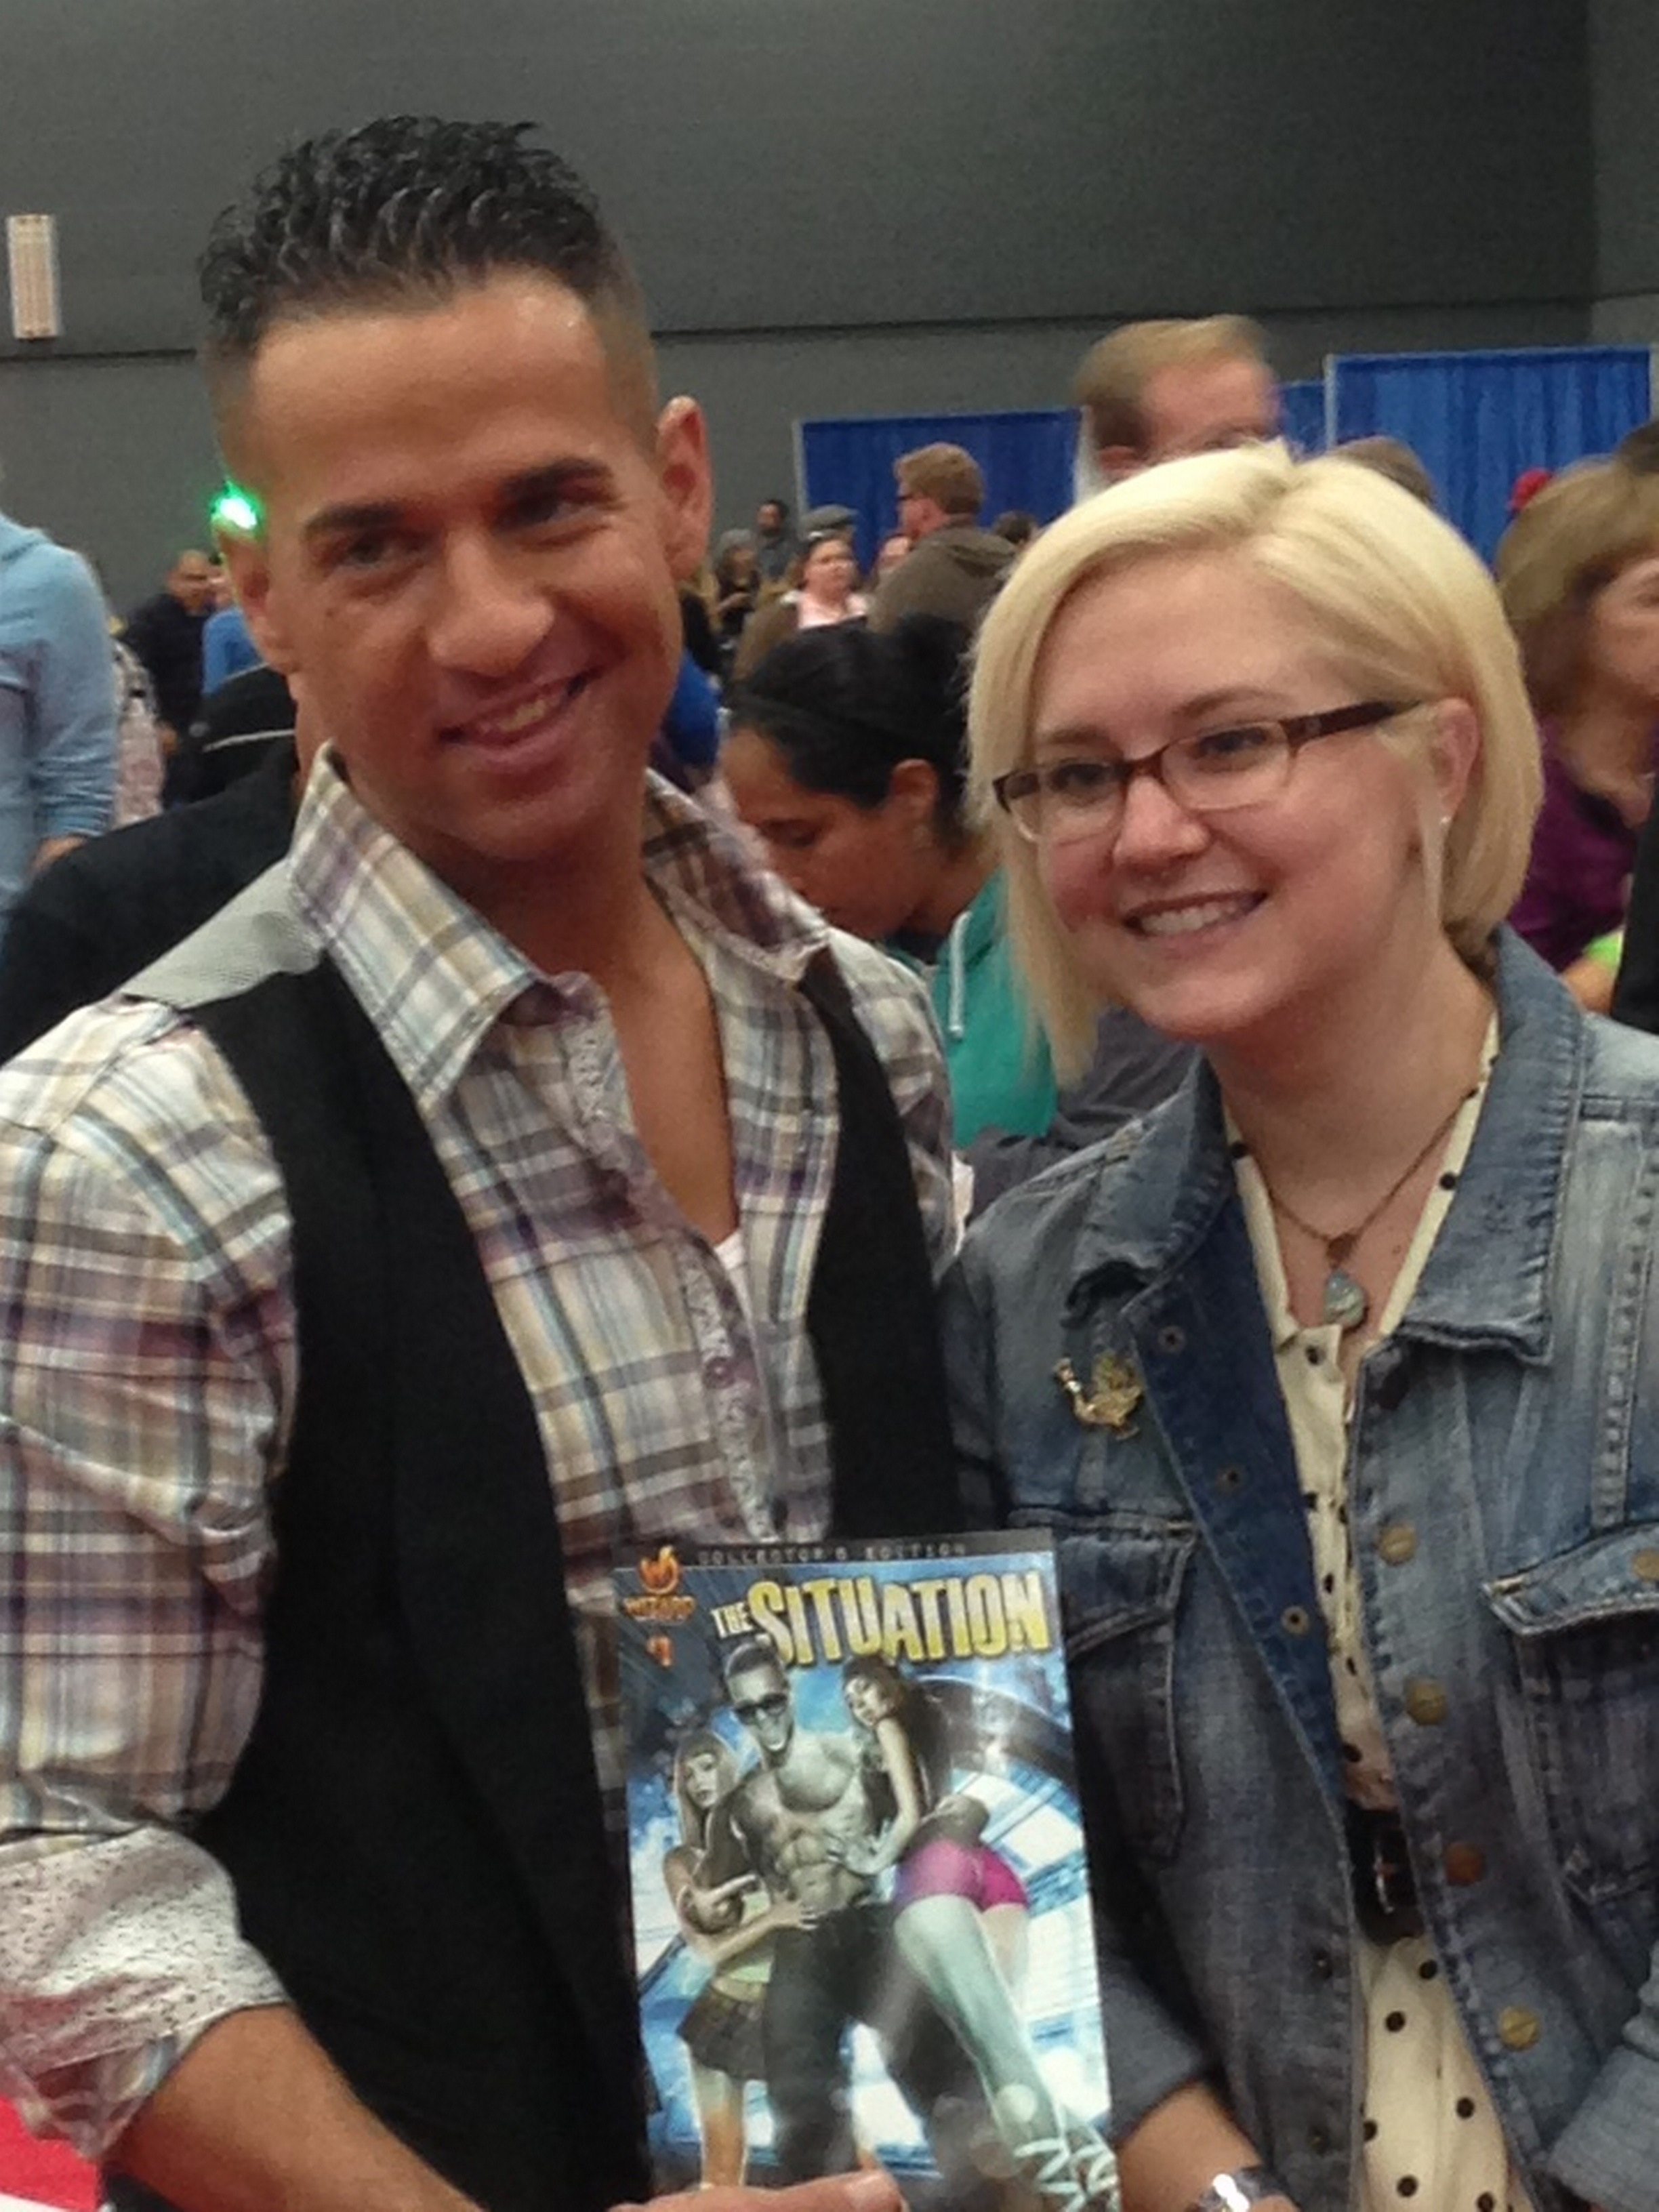 """The Situation"" at Austin Comic Con"